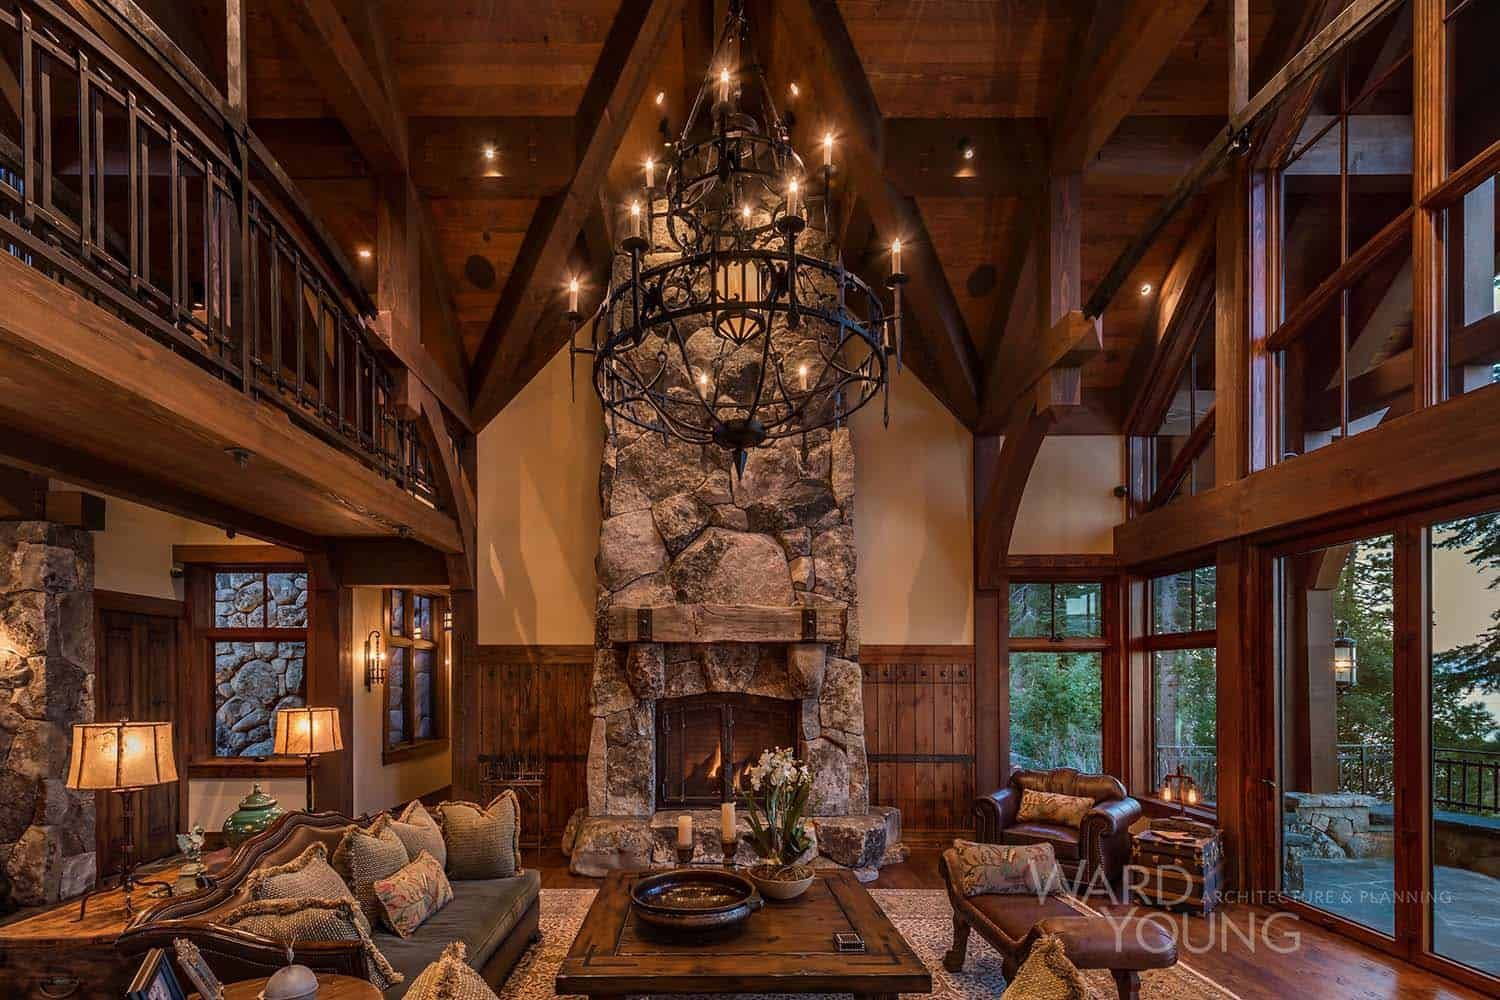 Stunning Lodge Style Home With Old World Luxury Overlooking Lake